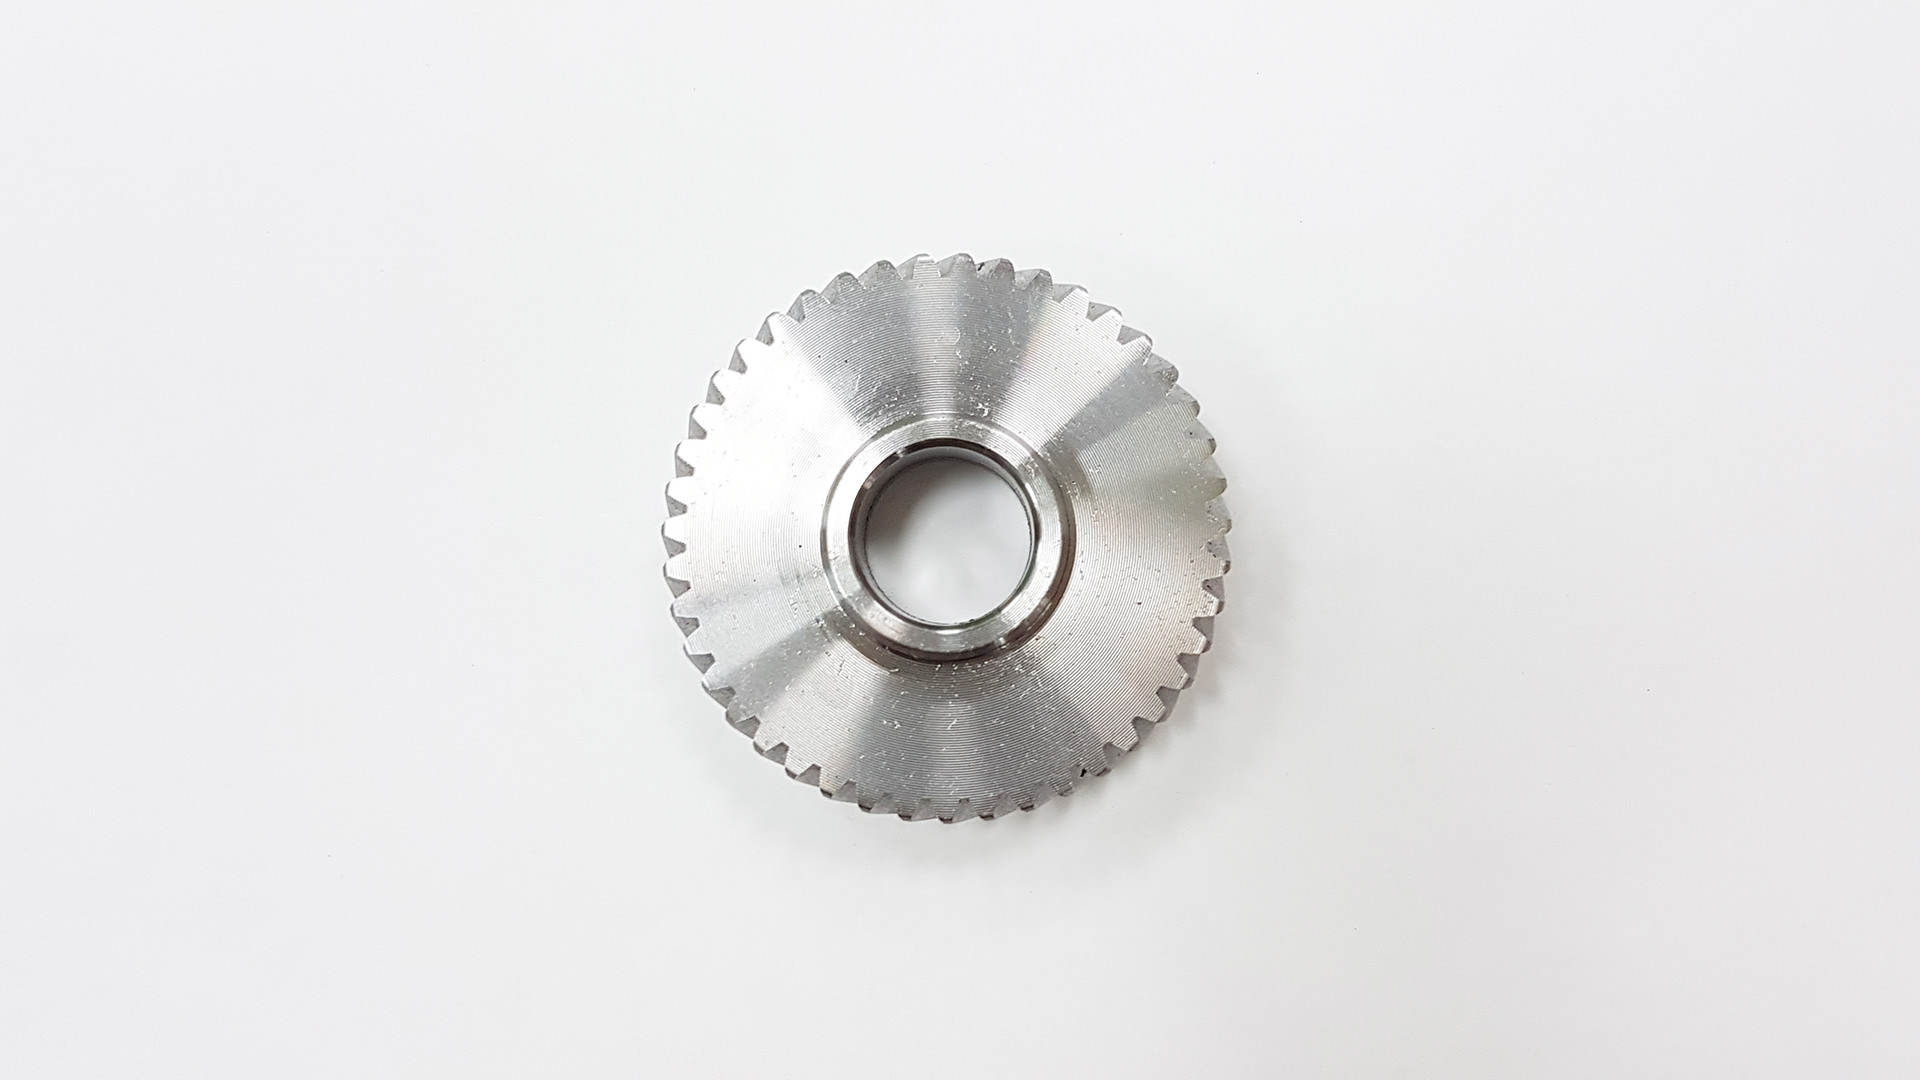 Power Tools, Woodworking Machines Parts, Gear Wheel, Transmission Parts, Parts and Assemblies of Gear Reducer, Induction Heating, OEM Manufacturer